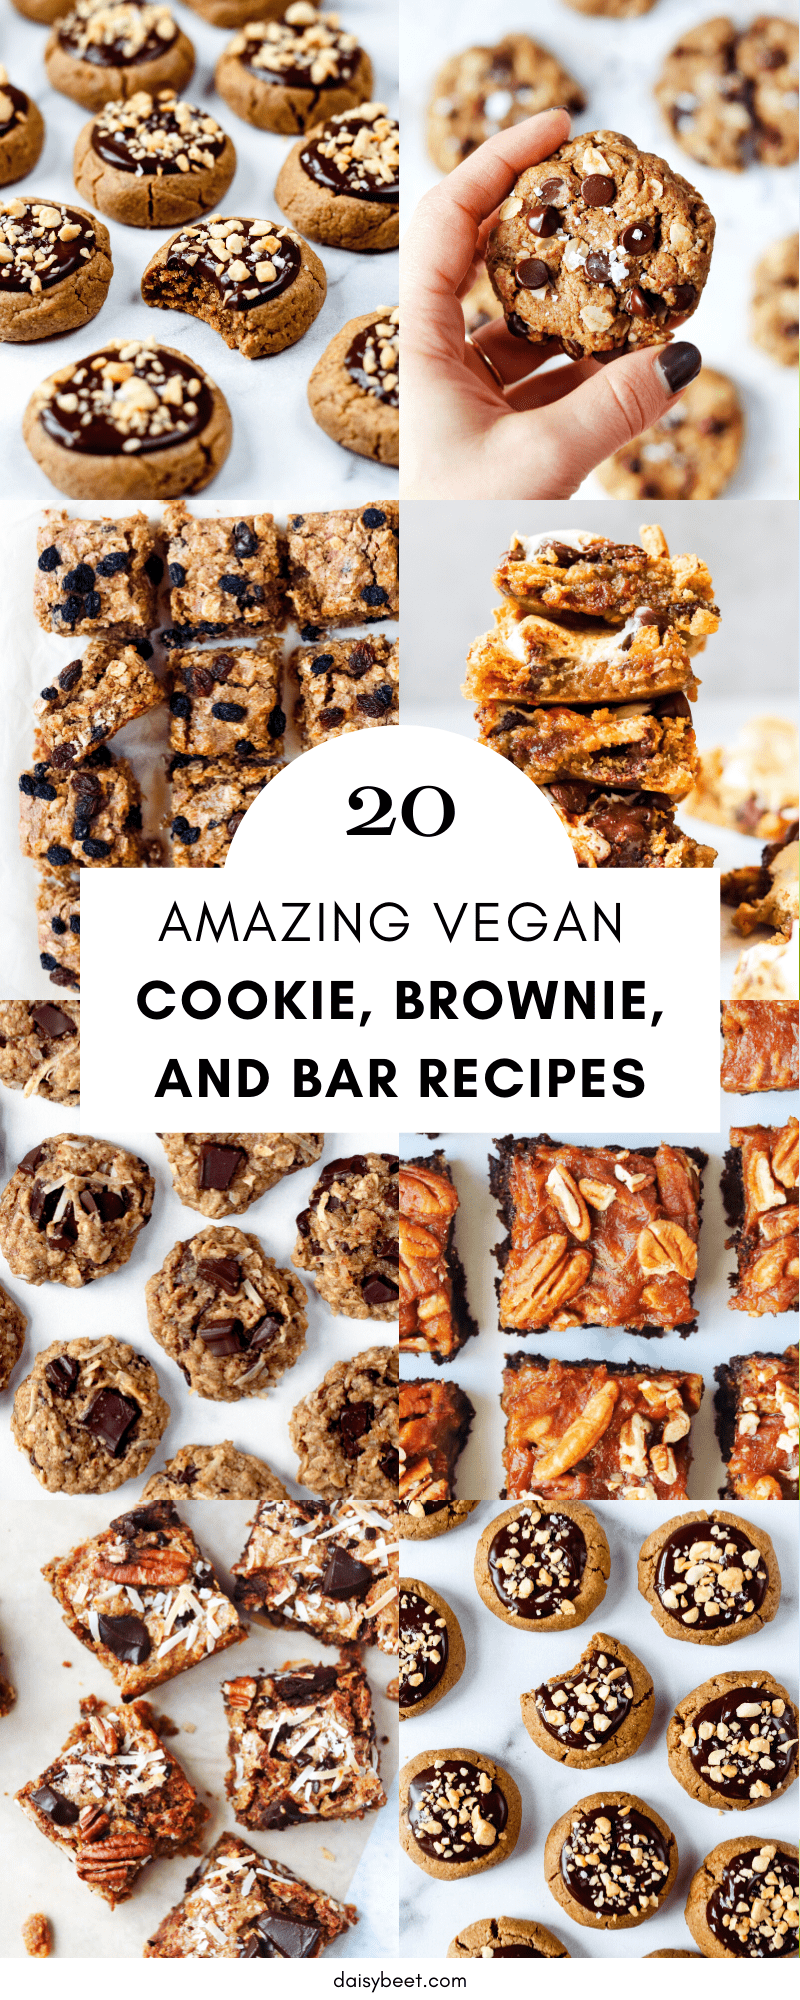 20 Amazing Vegan Cookie, Brownie, and Bar Recipes - Daisybeet